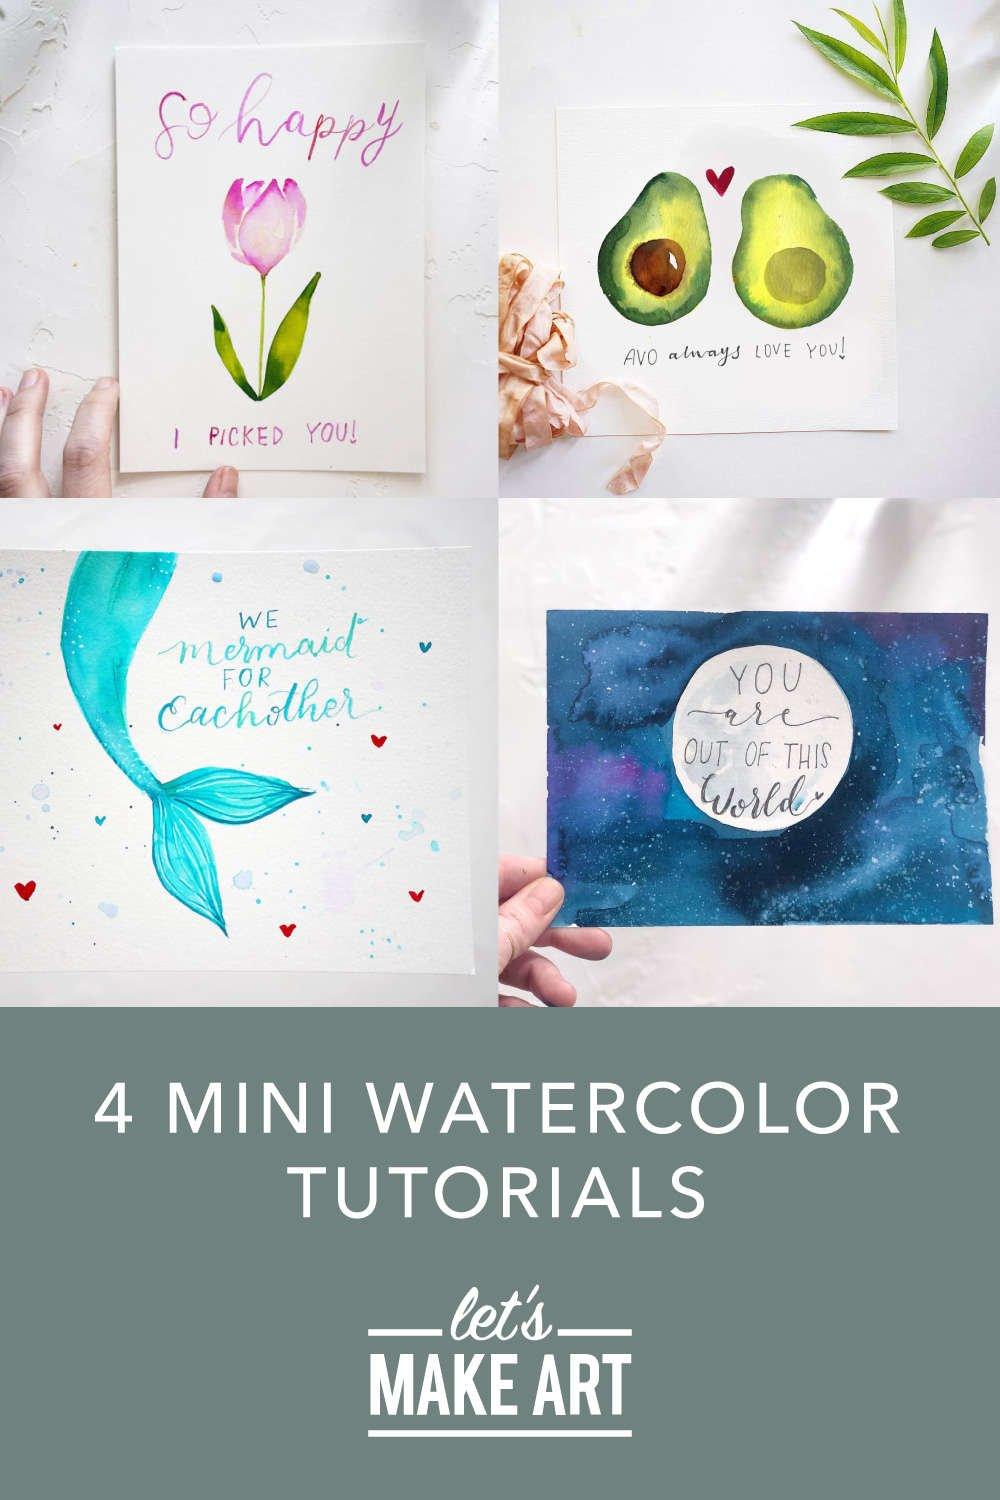 image of four mini watercolor tutorials featuring a mermaid tail, tulip, night sky with moon, and avocado